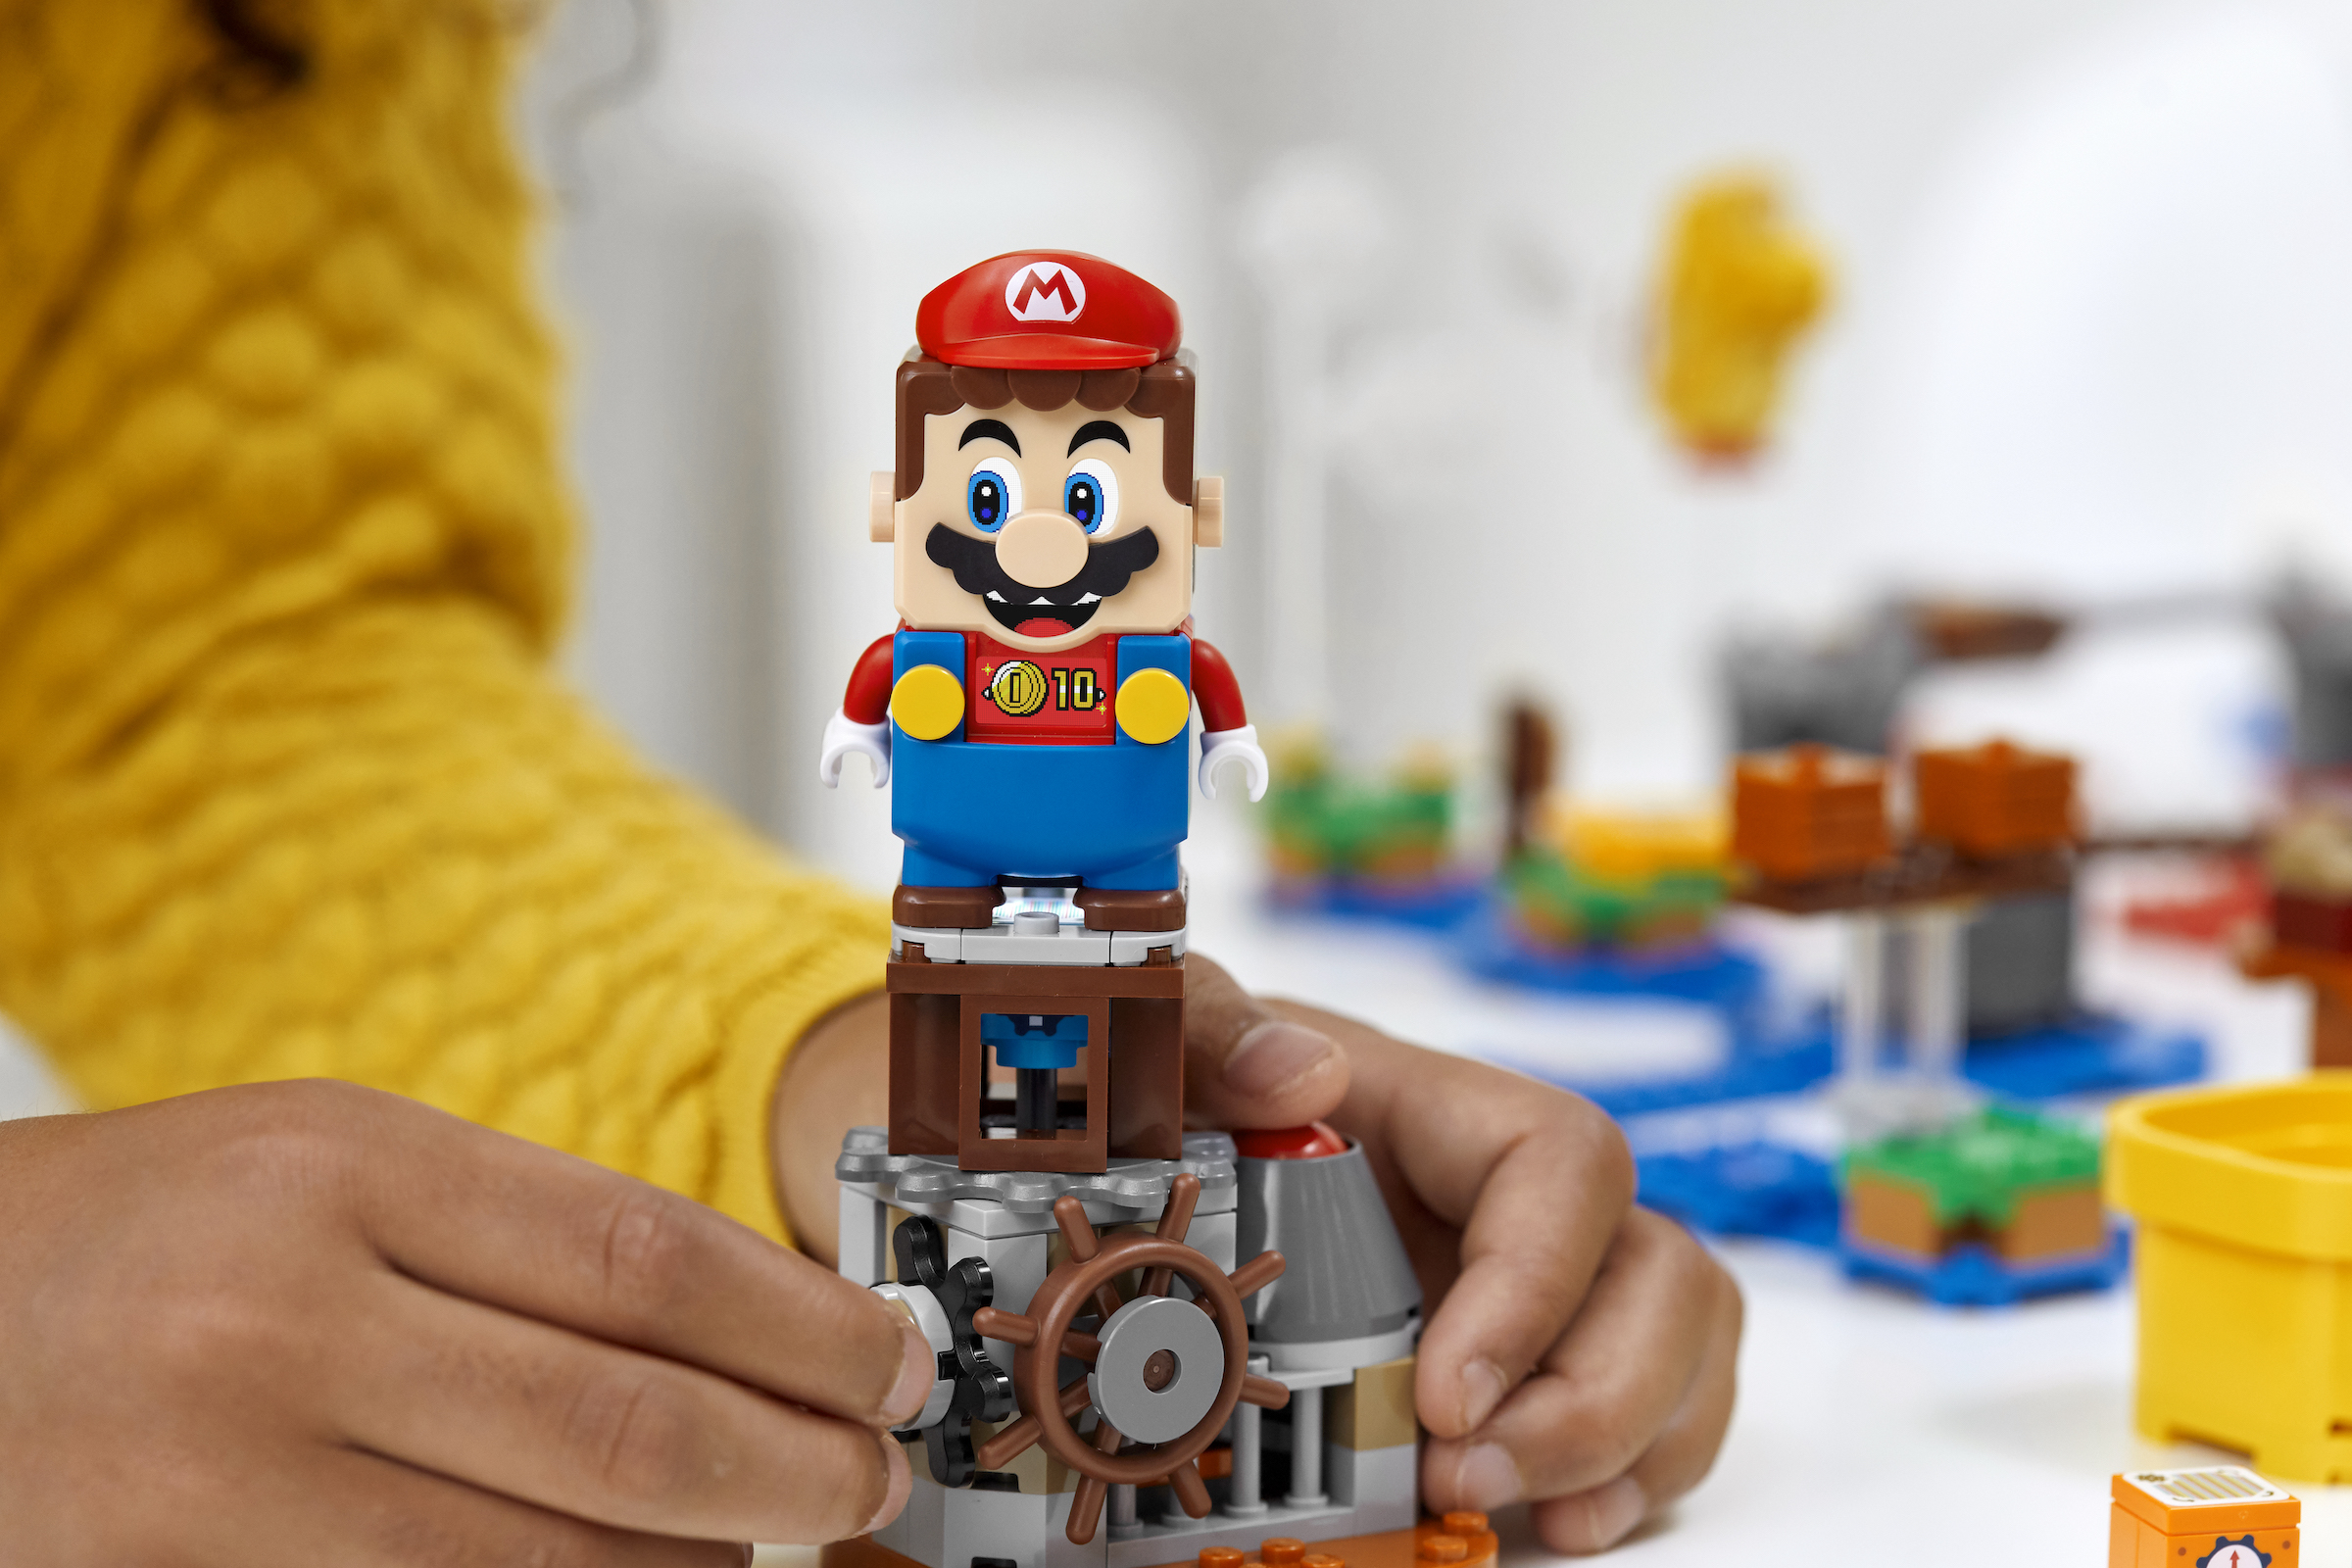 Lego expands its Super Mario world with customization tools, new Mario power-ups, and more characters 2